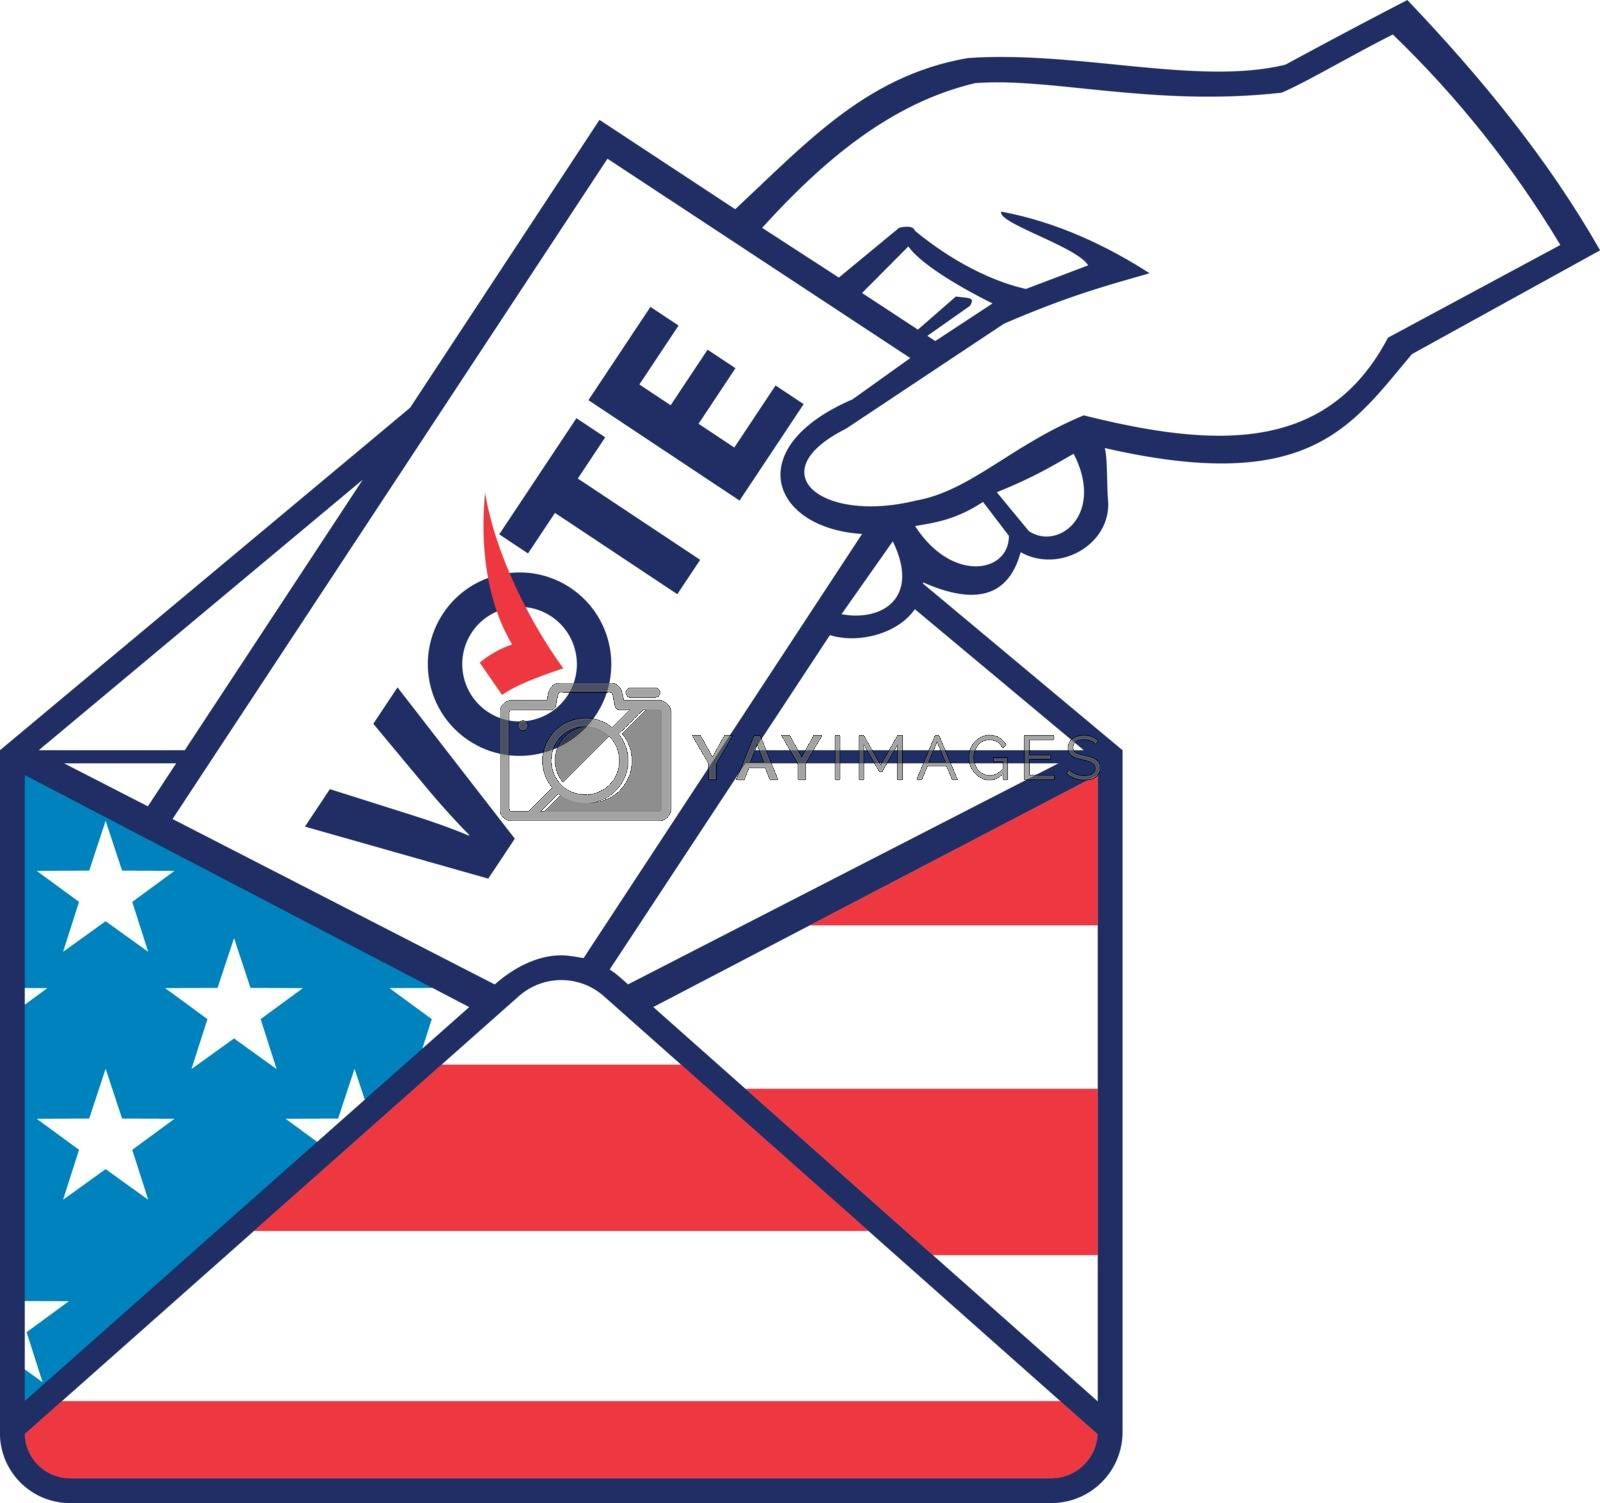 Retro style illustration of a hand of an American voter posting ballot or vote inside postal ballot envelope with USA stars and stripes flag on isolated background.